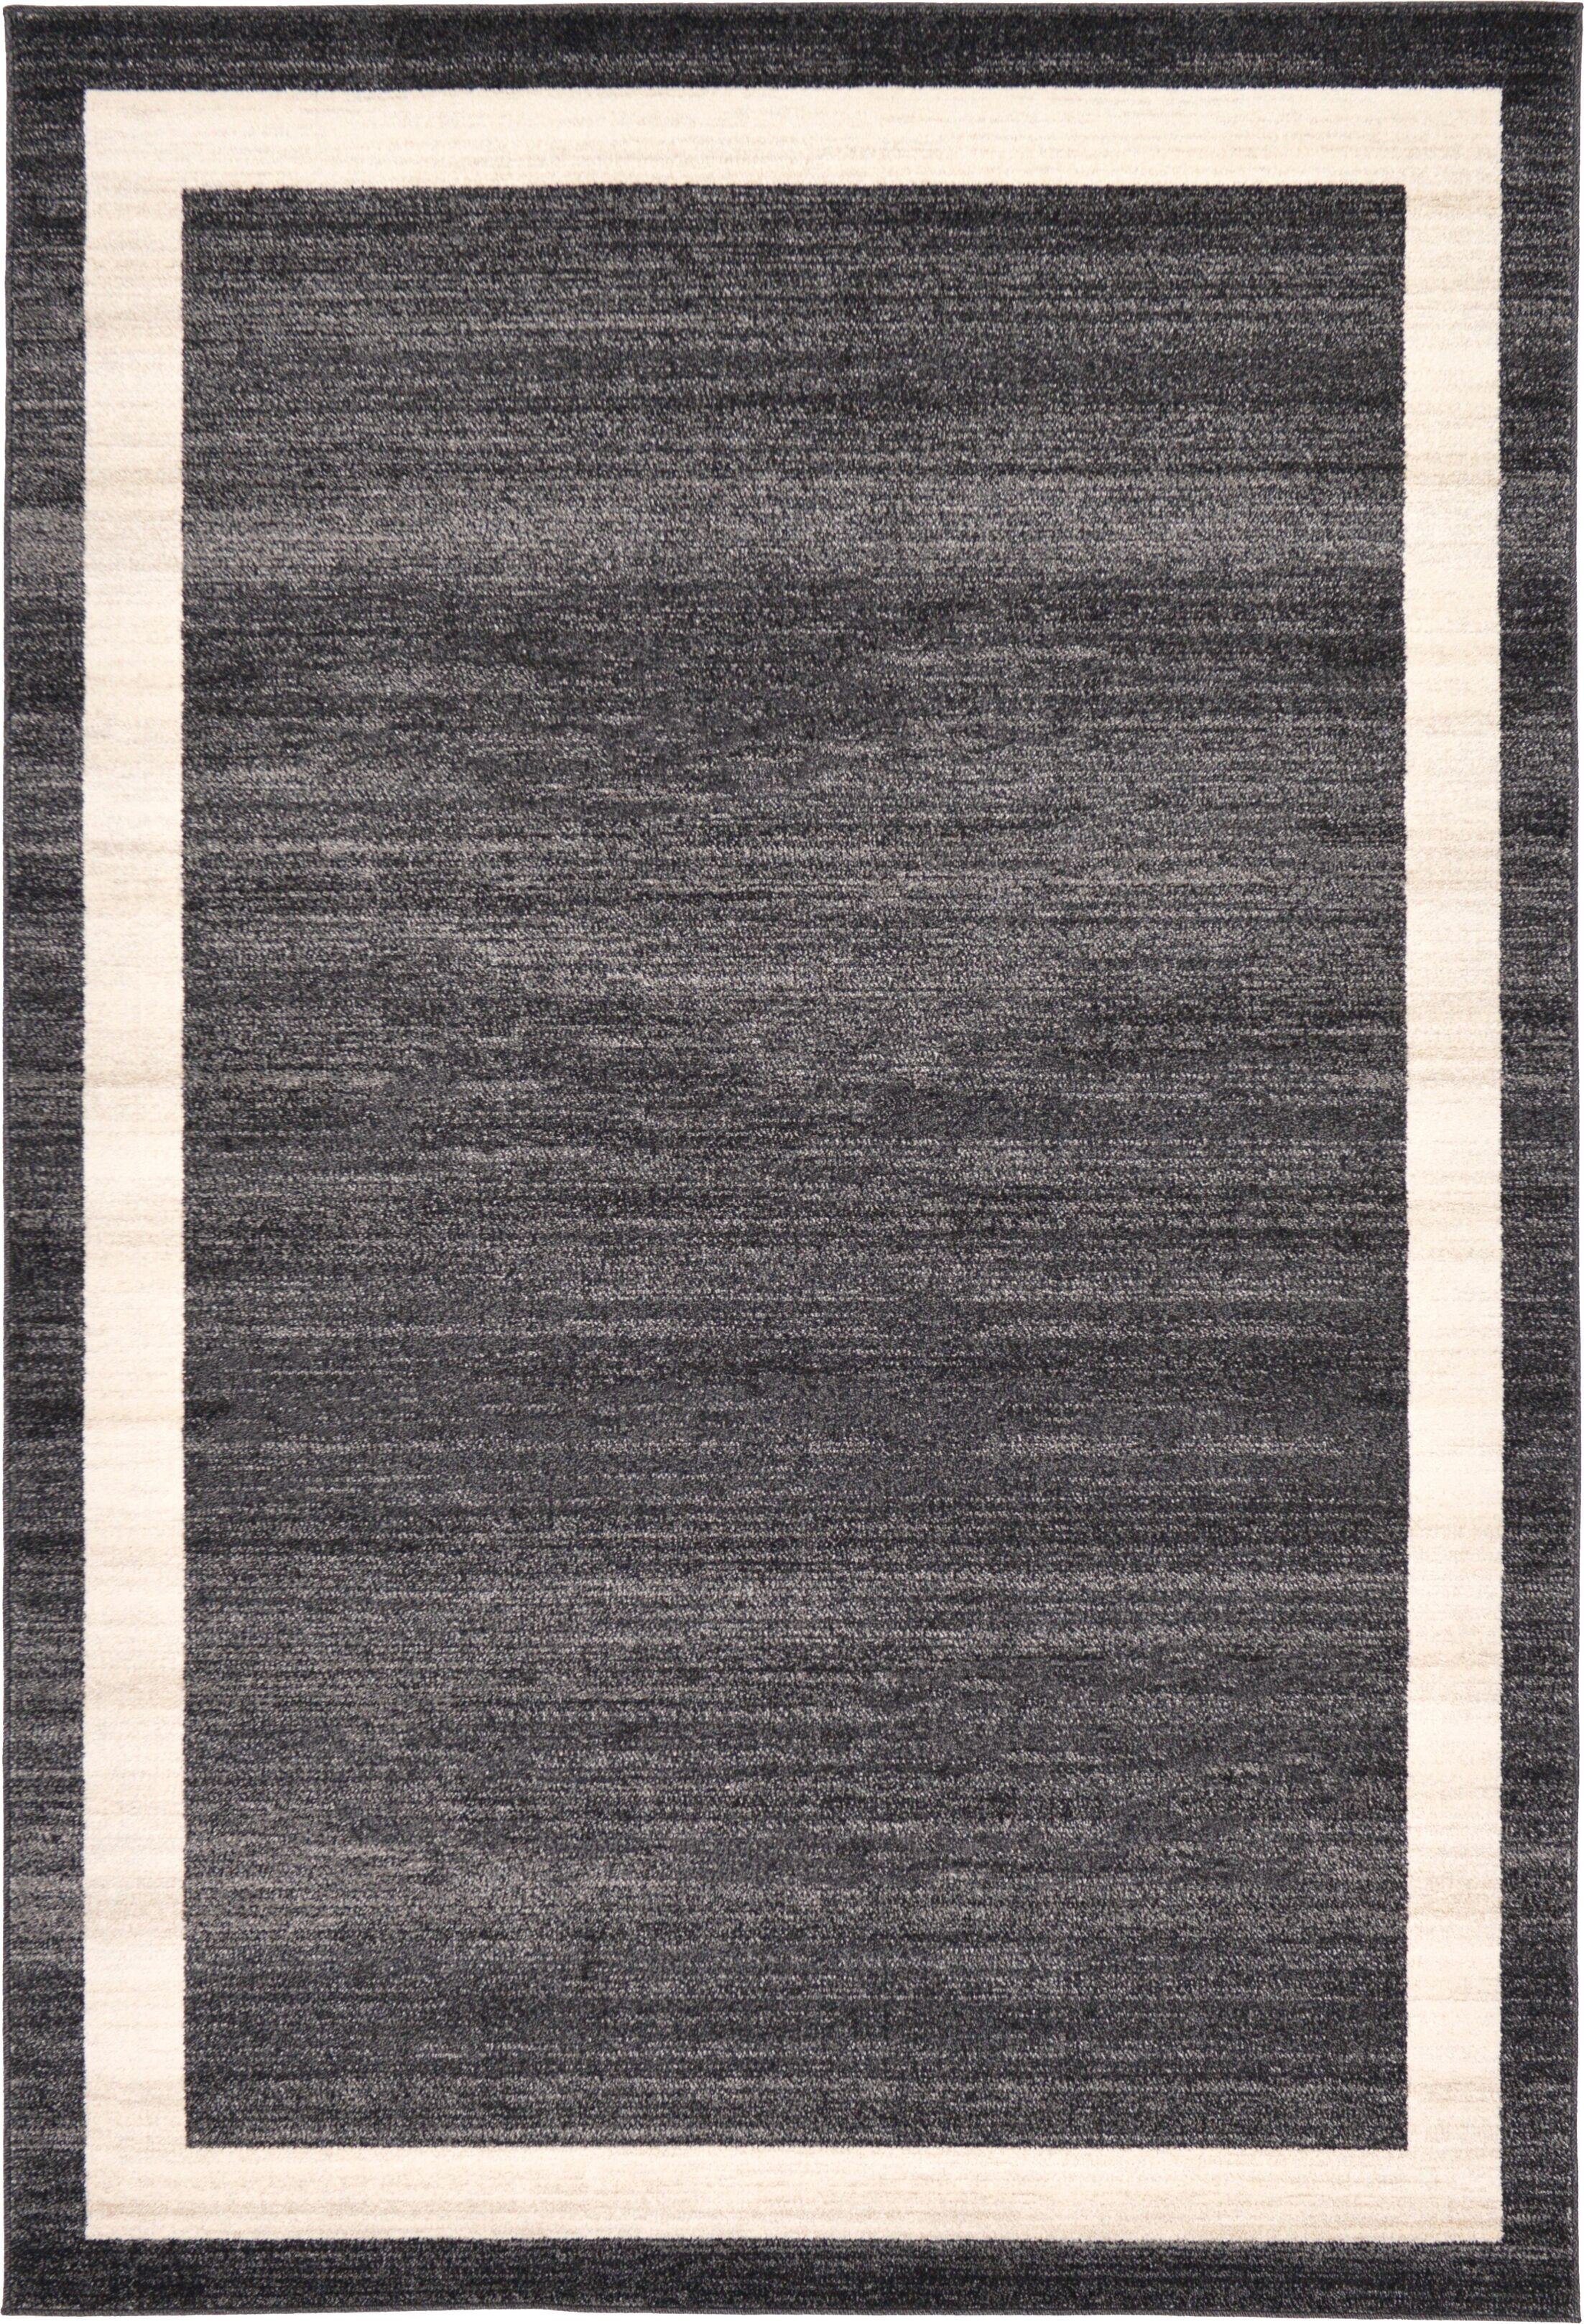 Cregan Black/Cream Area Rug Rug Size: Rectangle 6' x 9'